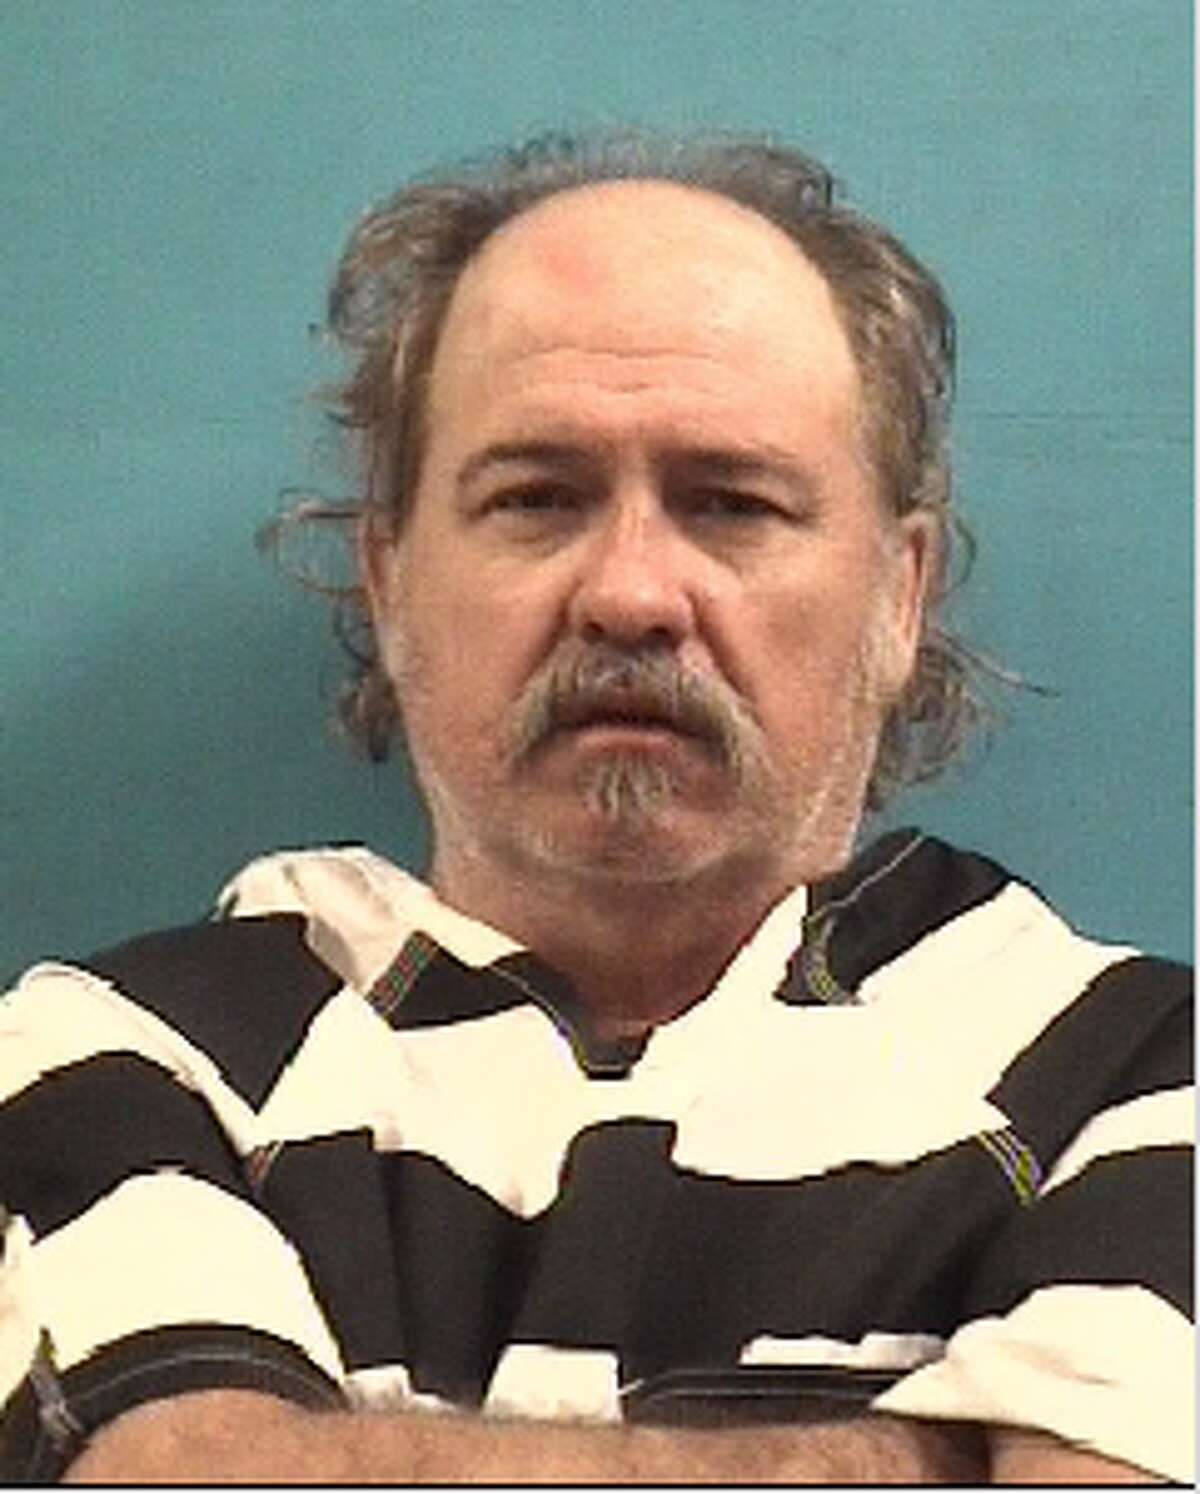 Richard Key, 55, was charged with murder after allegedly strangling his girlfriend's mother to death at their home in Pearland on Sept. 20, 2018.